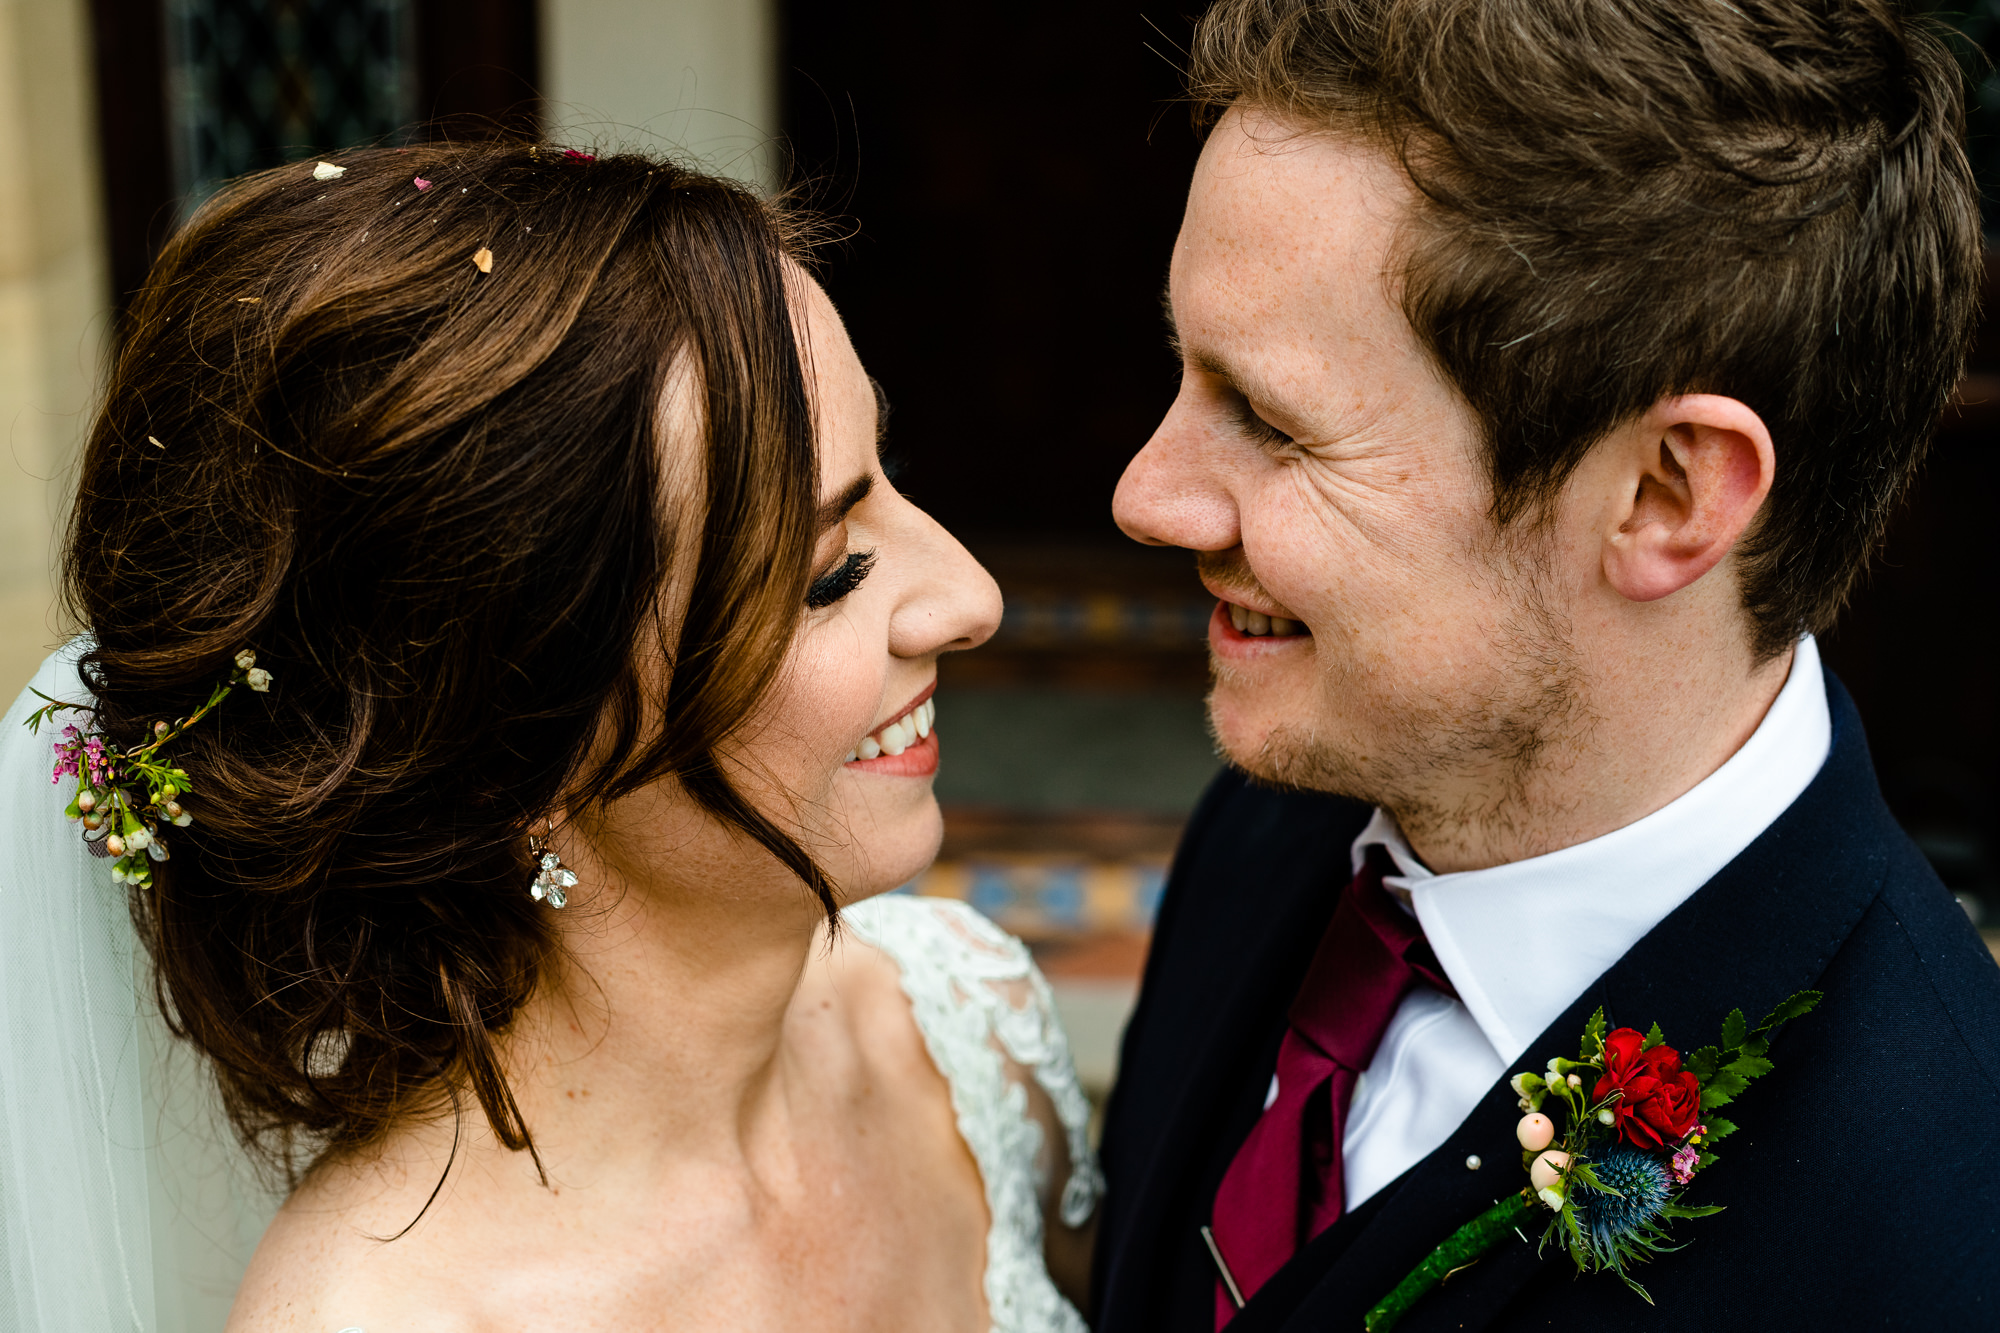 Nicola and Daves beautiful wedding at Tyn Dwr Hall in Wales